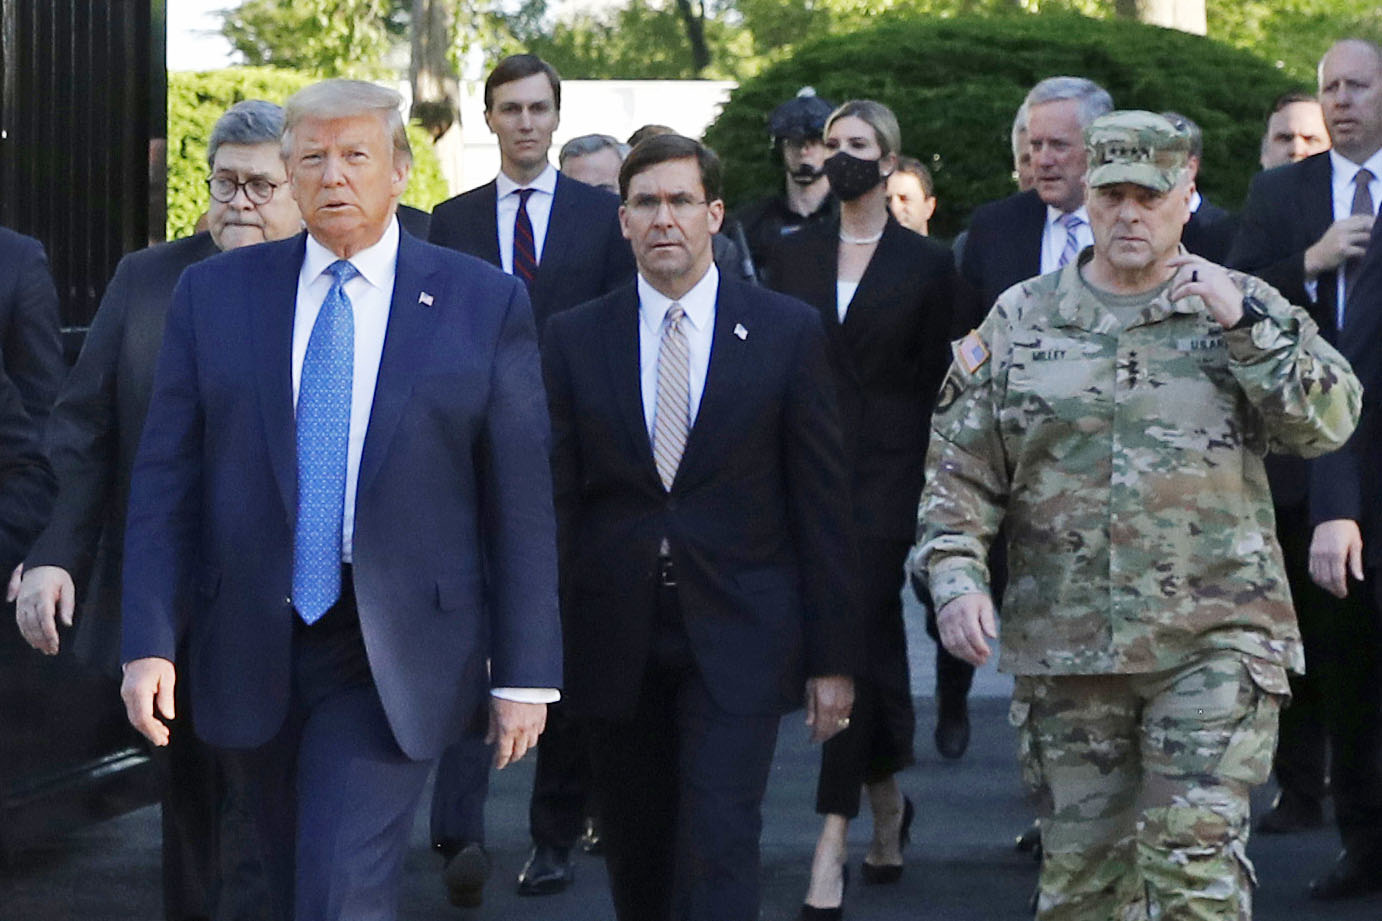 Gen. Mark Milley, right, walks with President Donald Trump, left, as Trump departs the White House to take a photo outside St. John's Church in Washington on June 1.